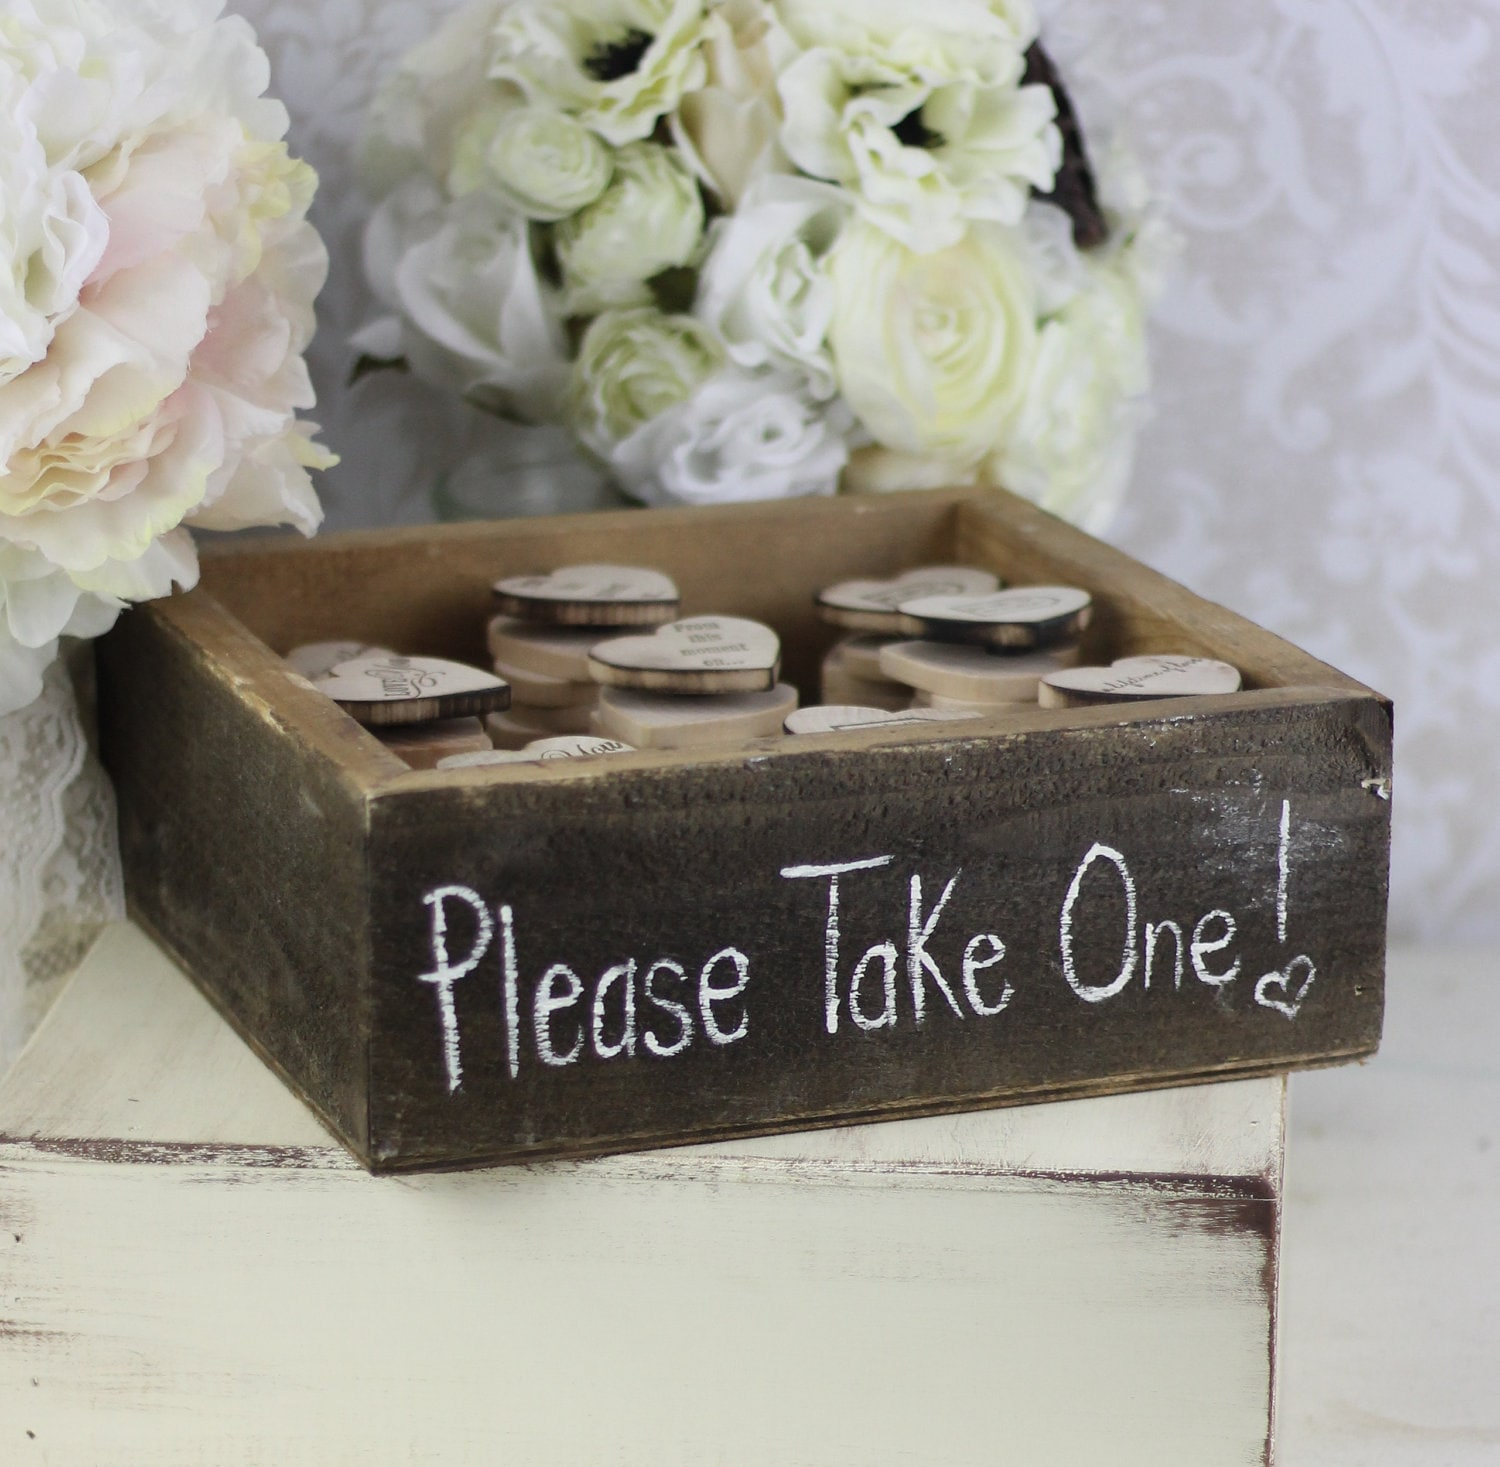 Party Favor Ideas For Wedding Reception: Wedding Favors Wood Heart Magnets Inside Rustic By